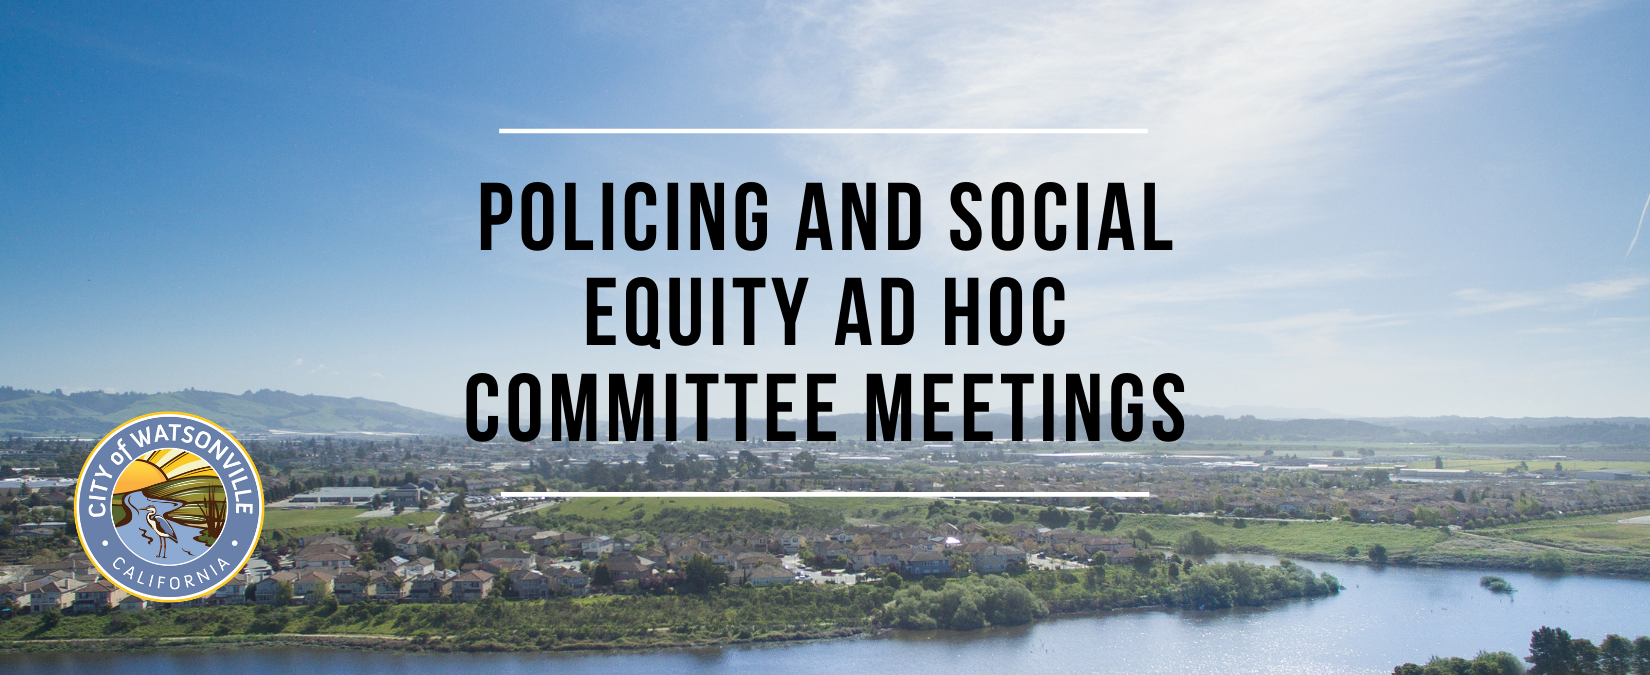 _policing_social equity ad hoc committee meeting schedule